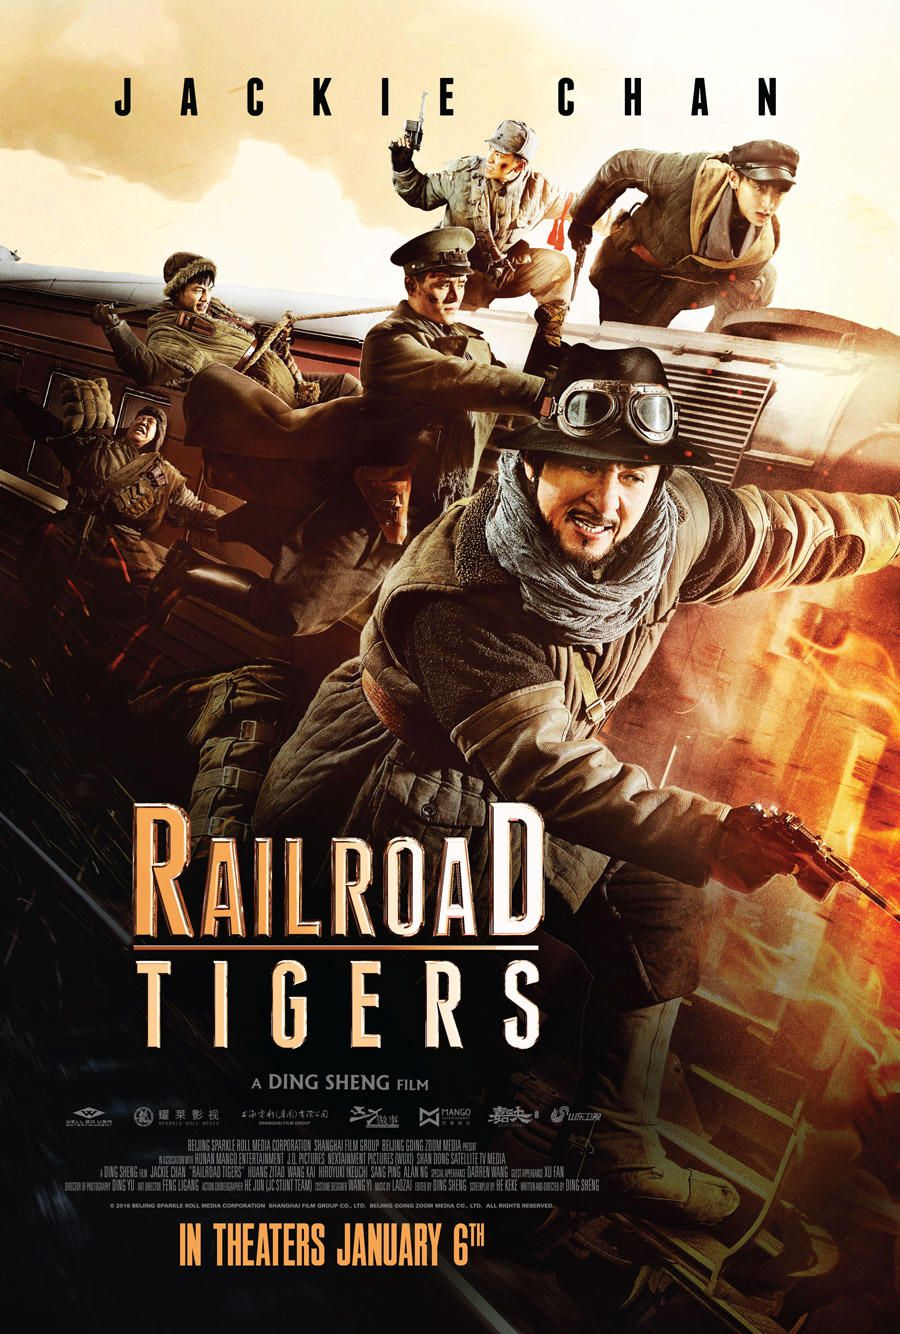 Railroad Tigers 2016 Tamil Dubbed Hd In 2020 Jackie Chan